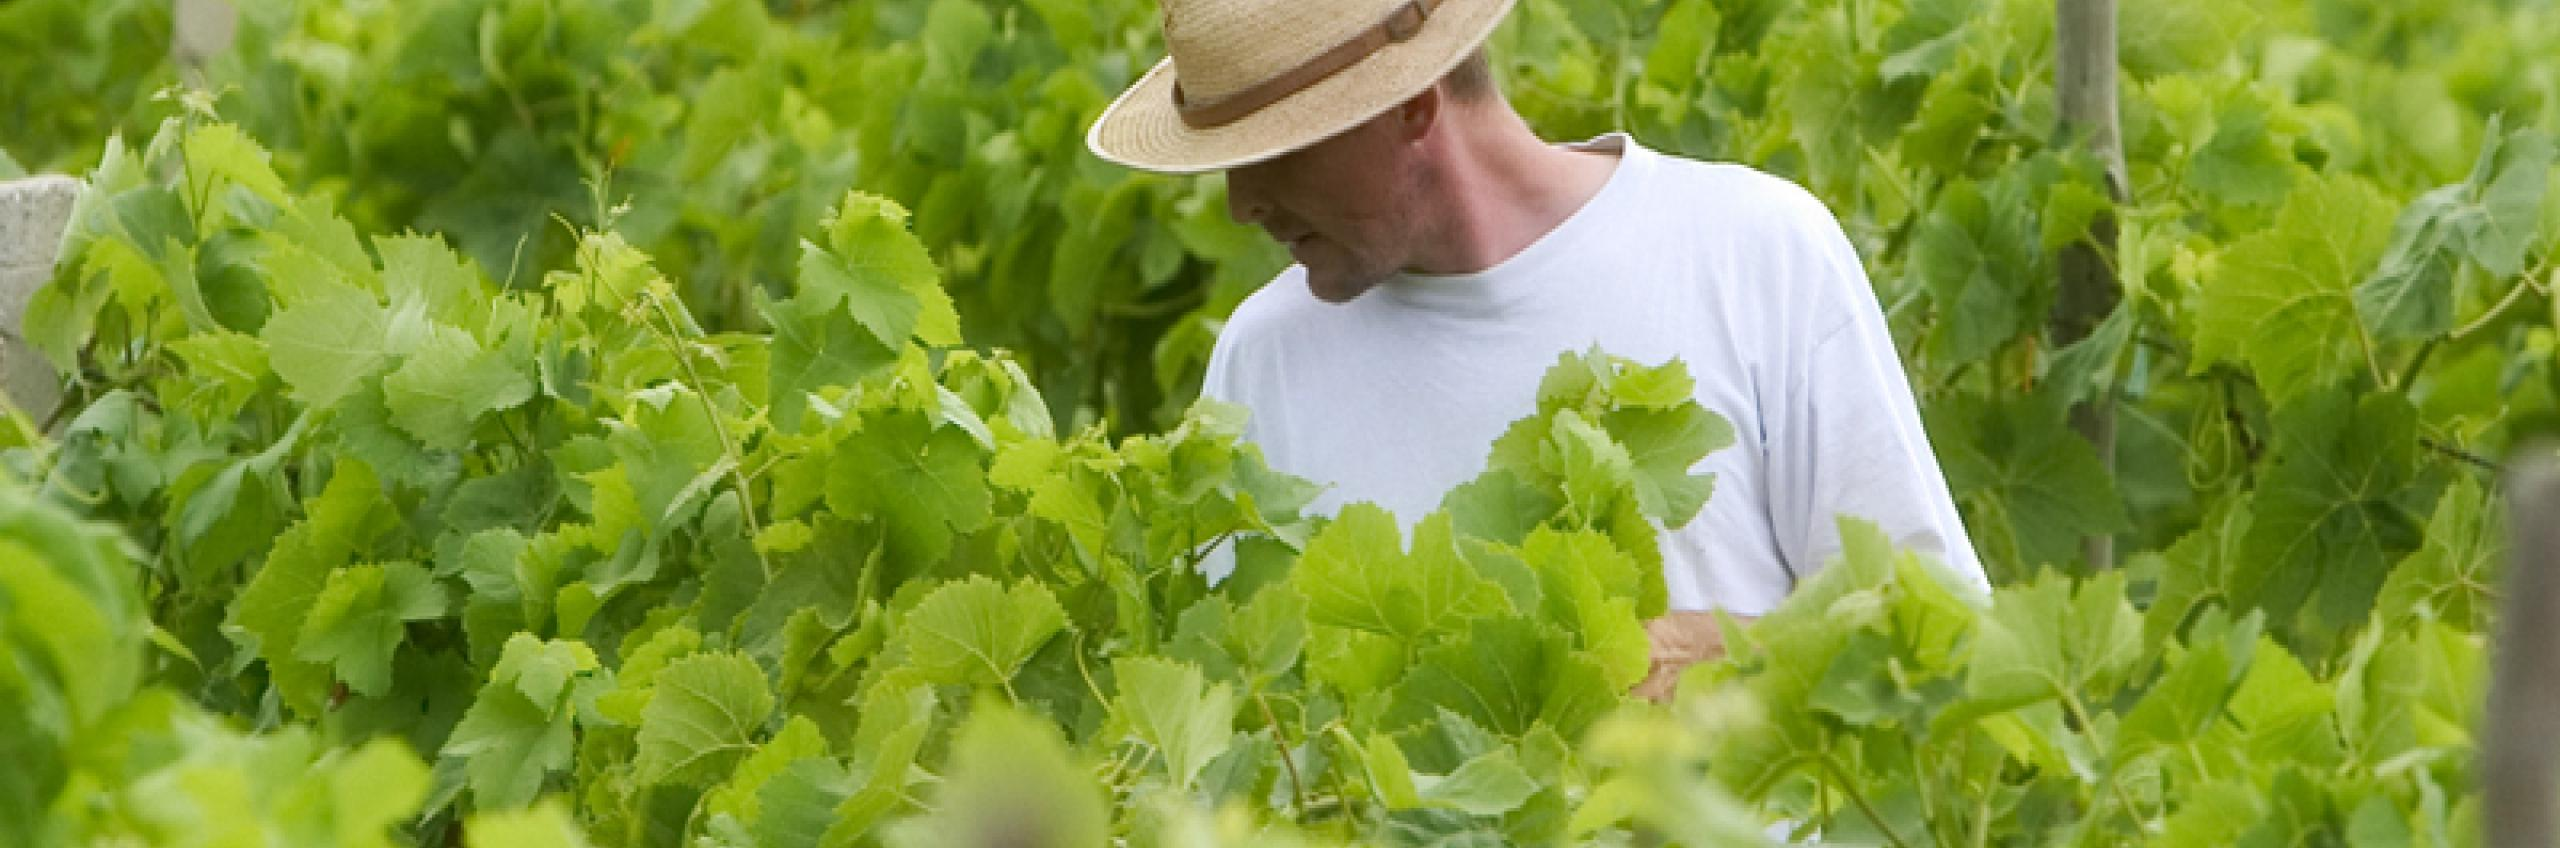 Organic gardening and wine cultivation is part of everyday life in Croatia.